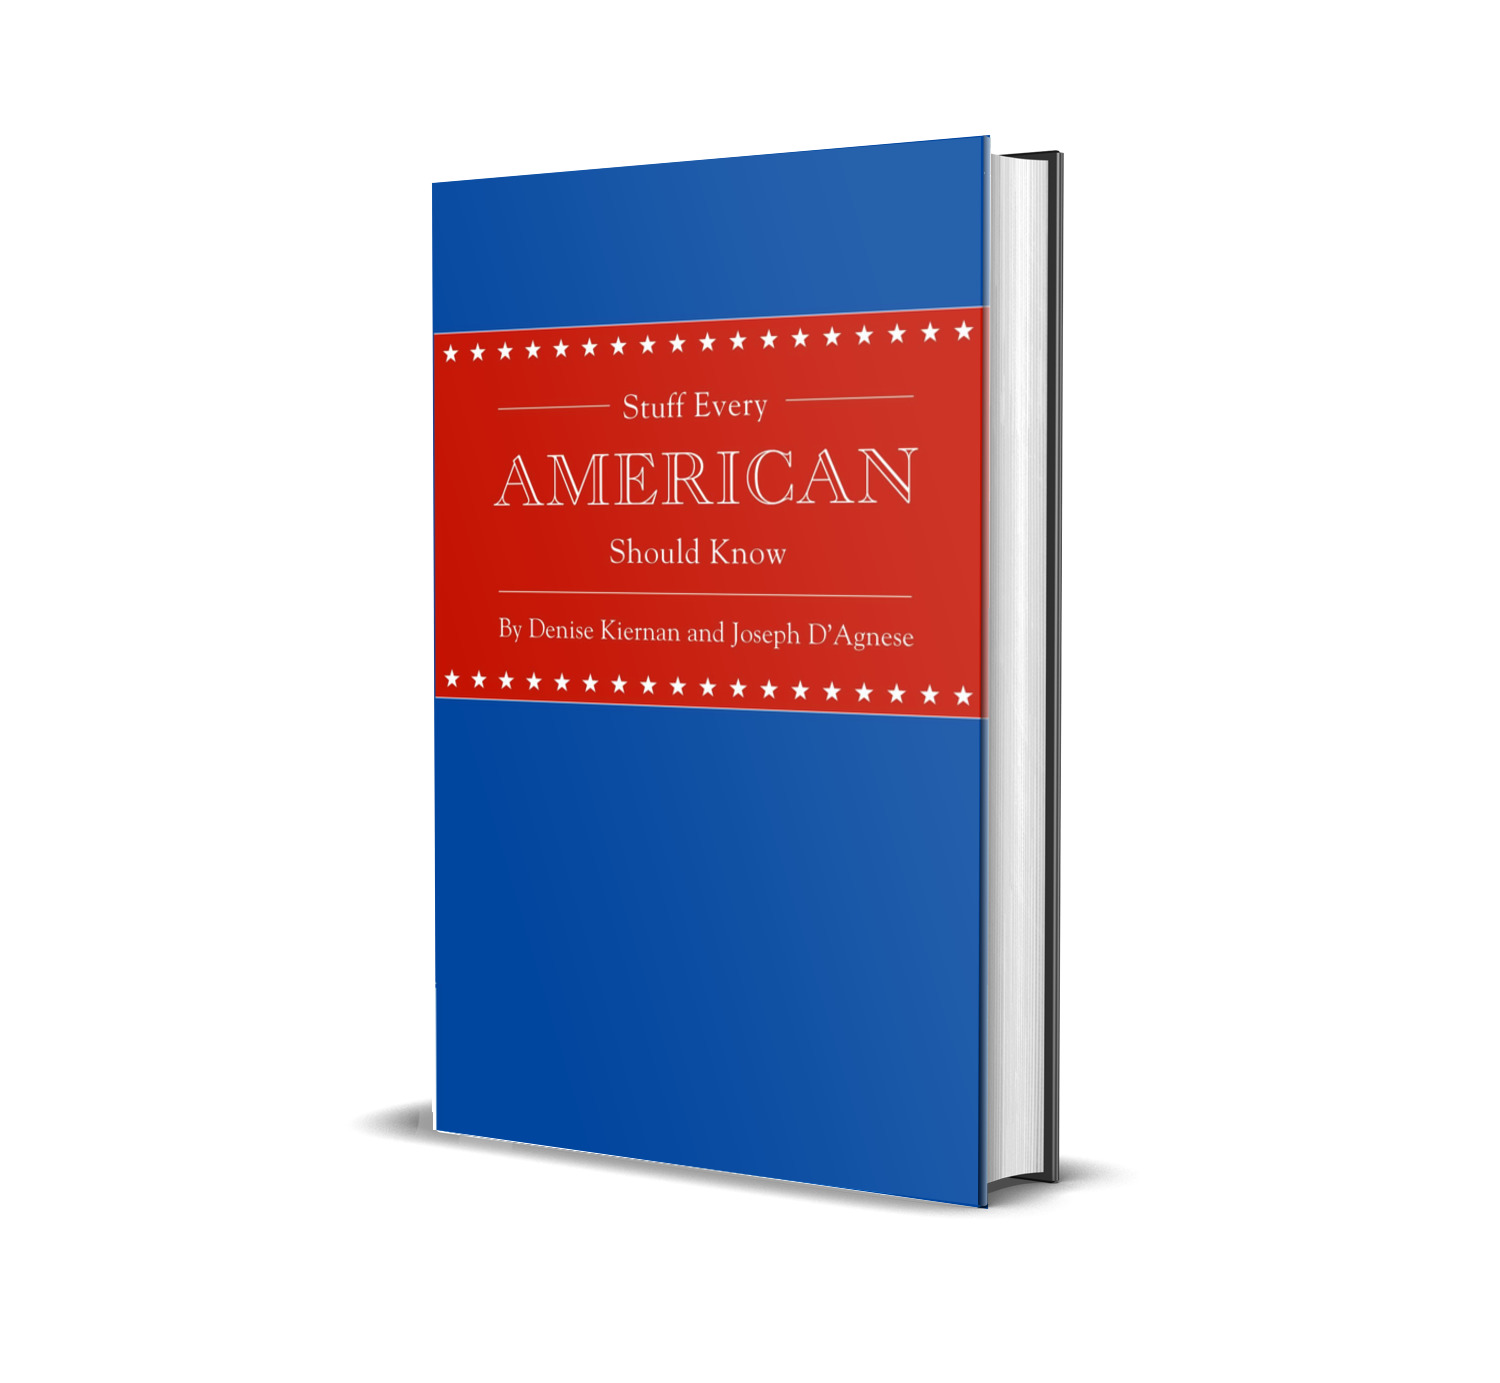 Stuff Every American Should Know by Kiernan and D'Agnese